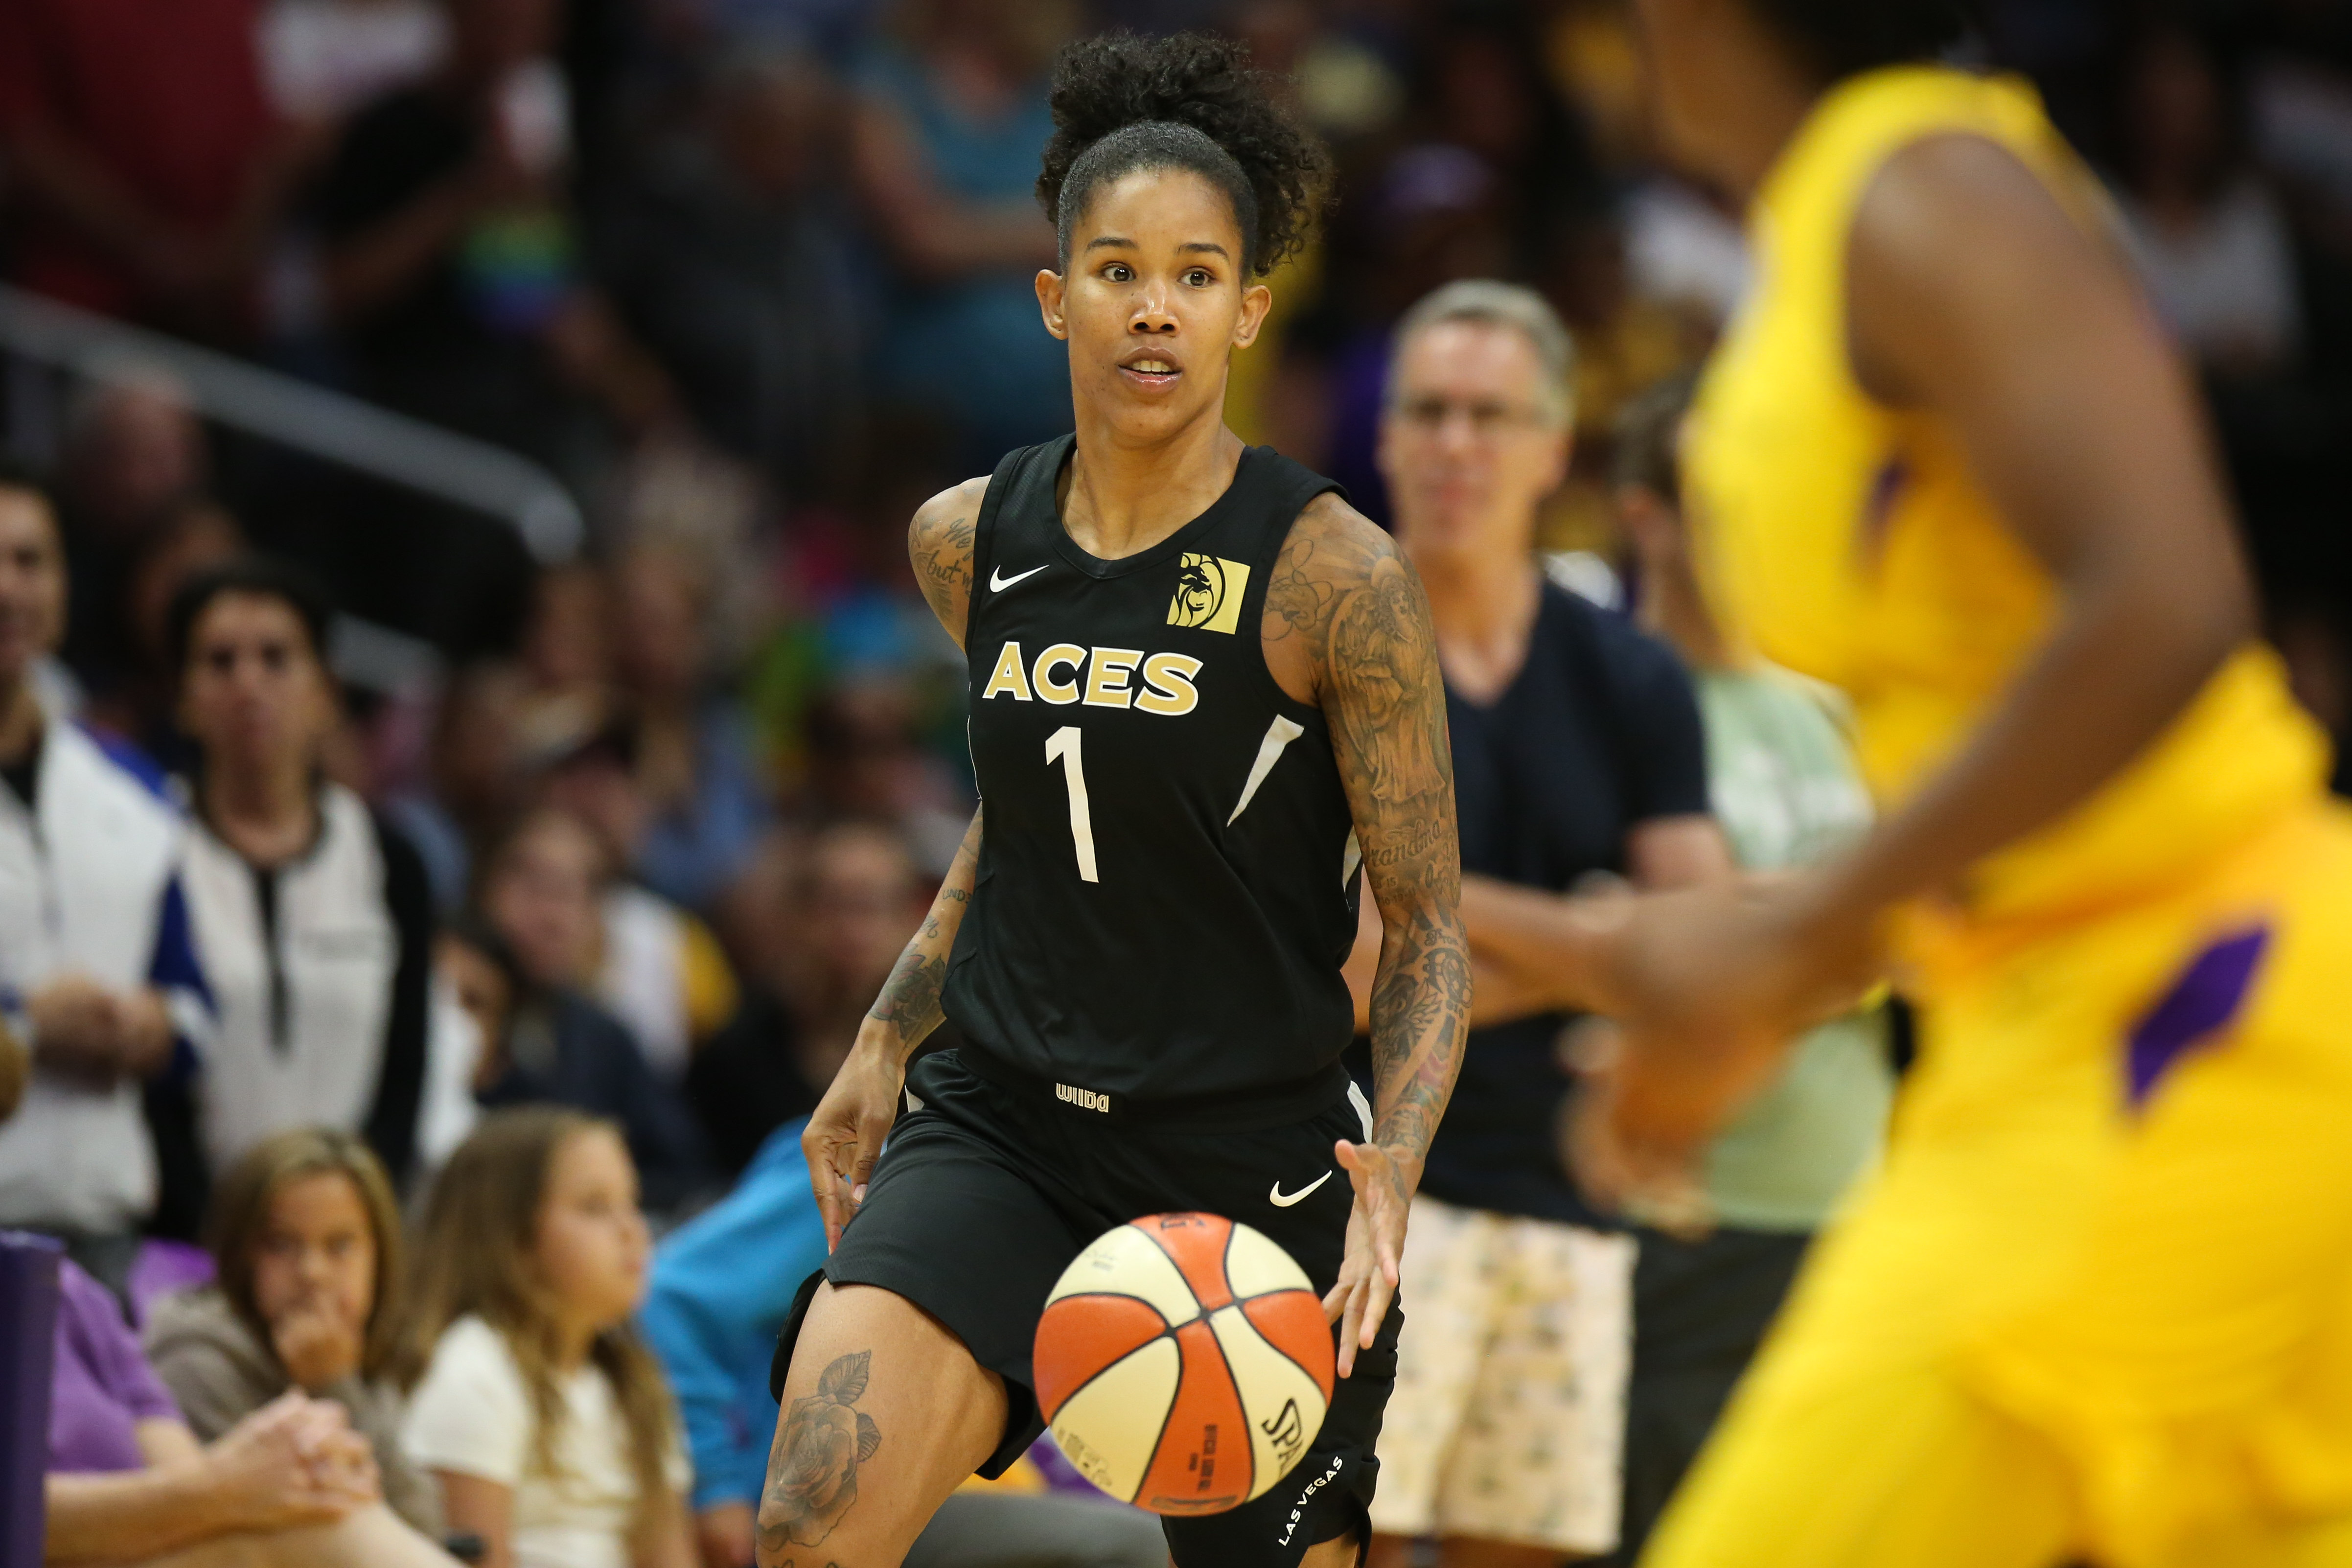 LOS ANGELES, CA - JULY 01: Las Vegas Aces forward Tamera Young (1) brings the ball down court during a WNBA game between the Los Angeles Sparks and the Las Vegas Aces on July 01, 2018, at Staples Center, in Los Angeles, CA. Jordon Kelly/CSM(Credit Image: © Jordon Kelly/CSM via ZUMA Wire)